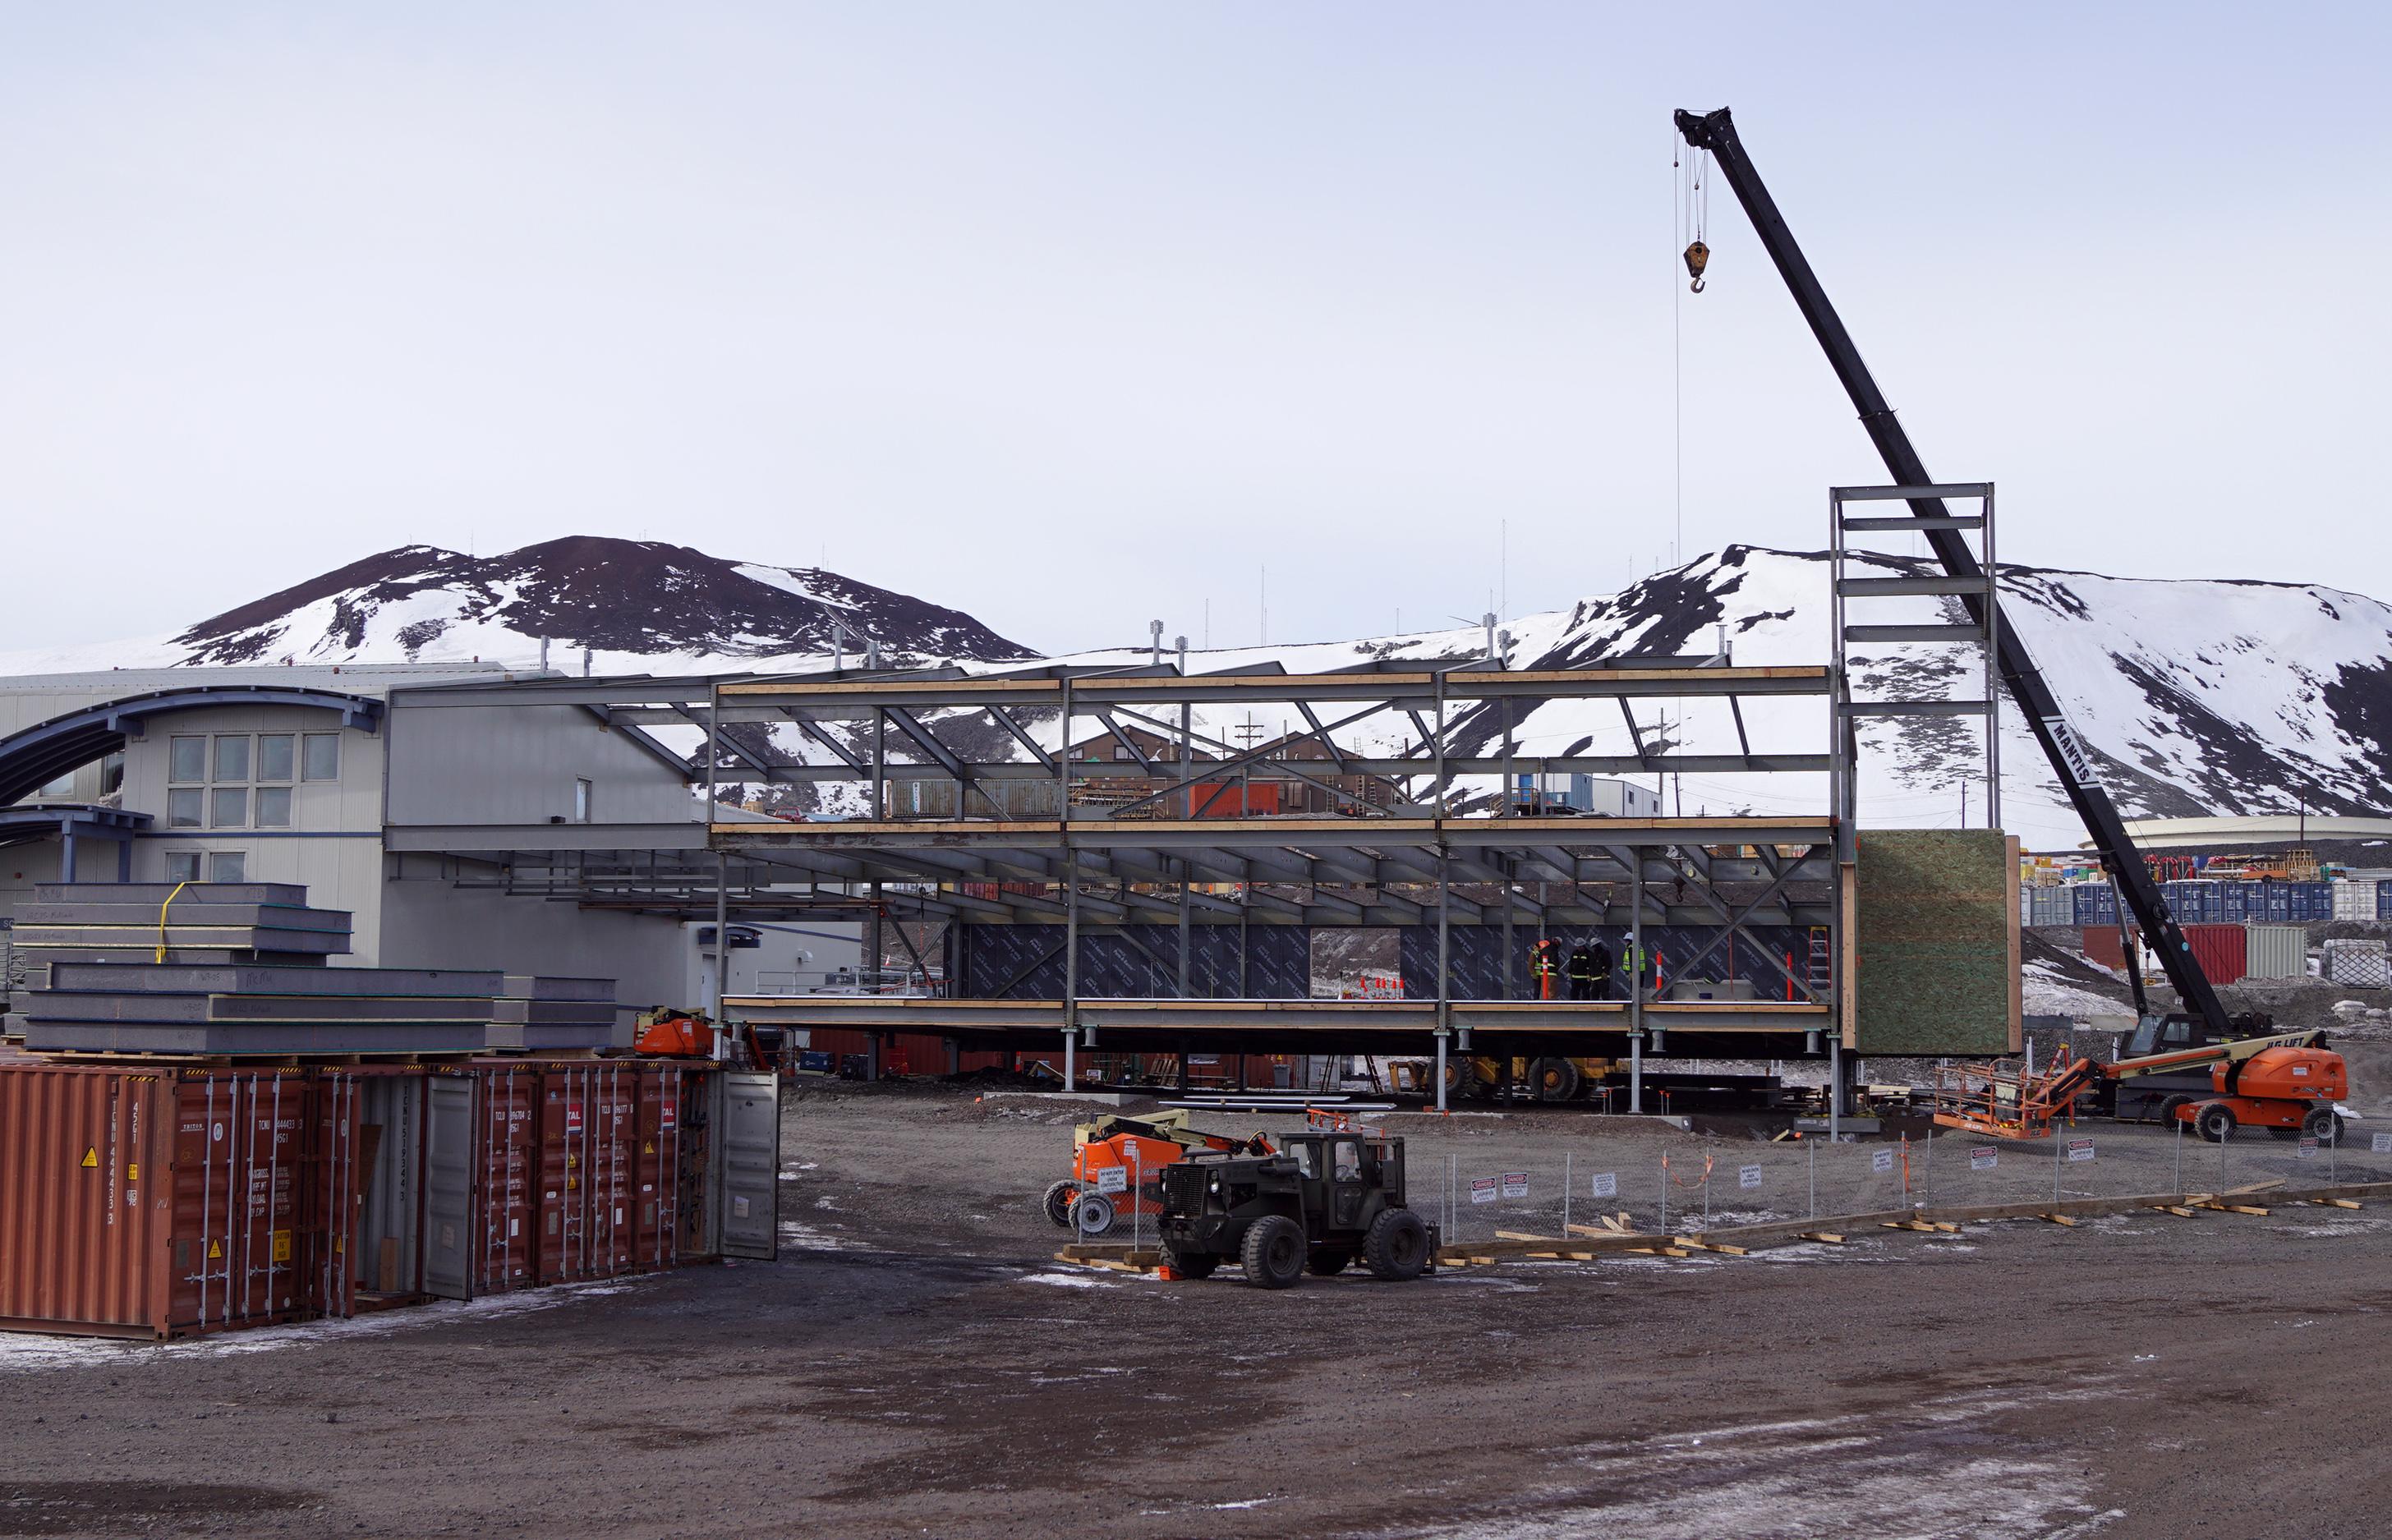 A steel beam building under construction.